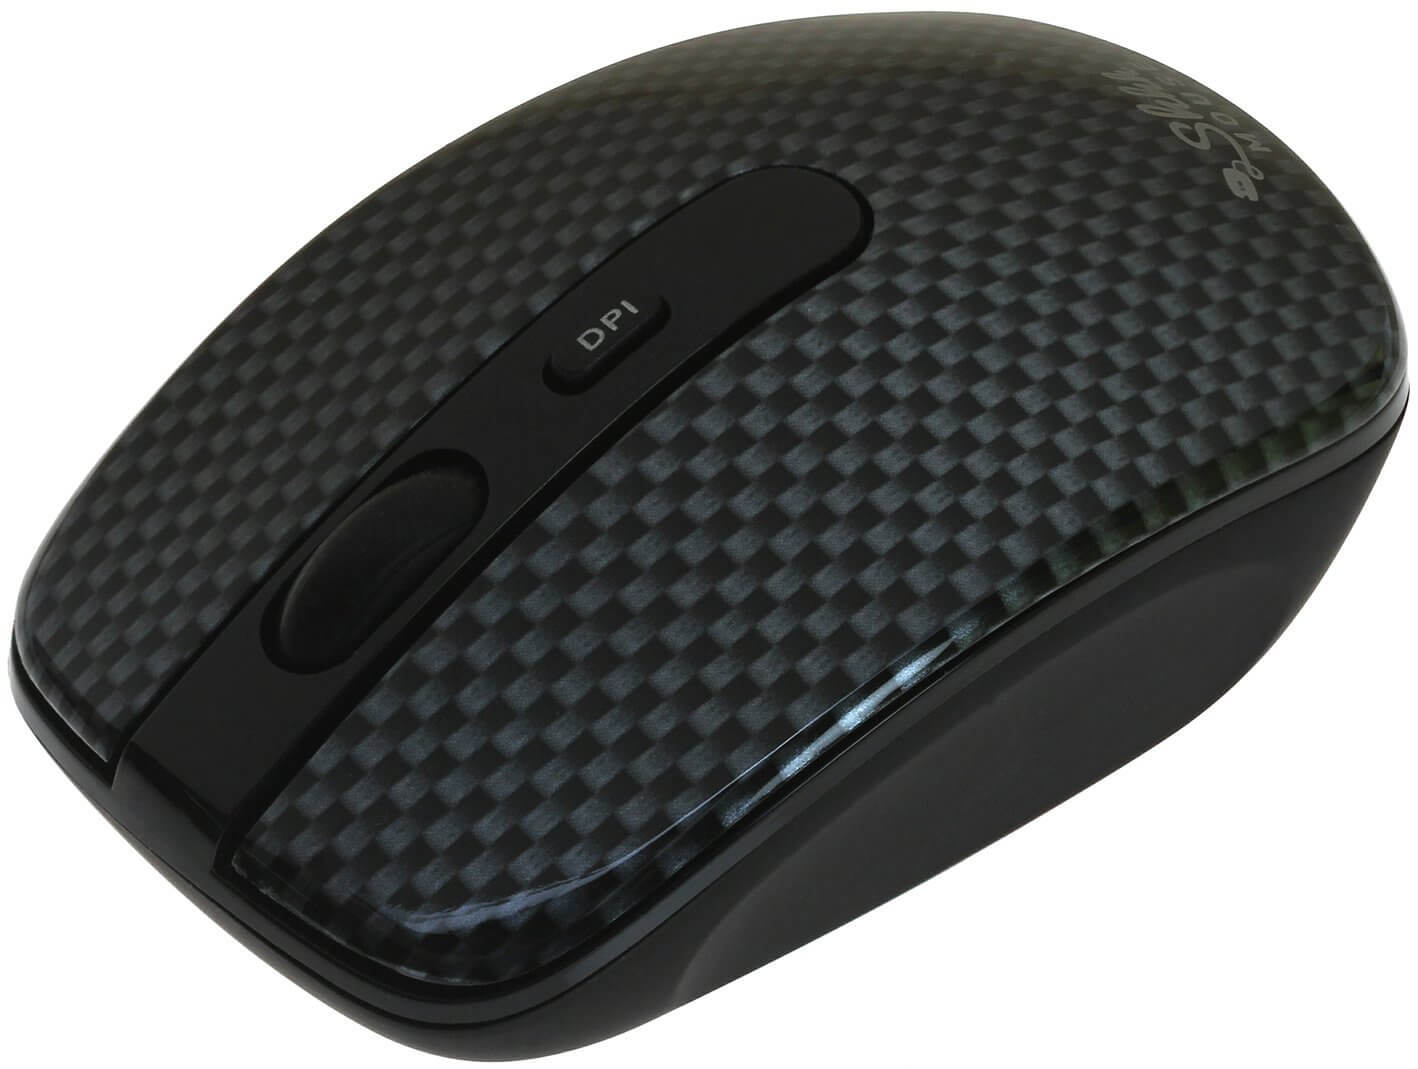 Shhhmouse Wireless Silent Mouse Carbon Fibre It Matters